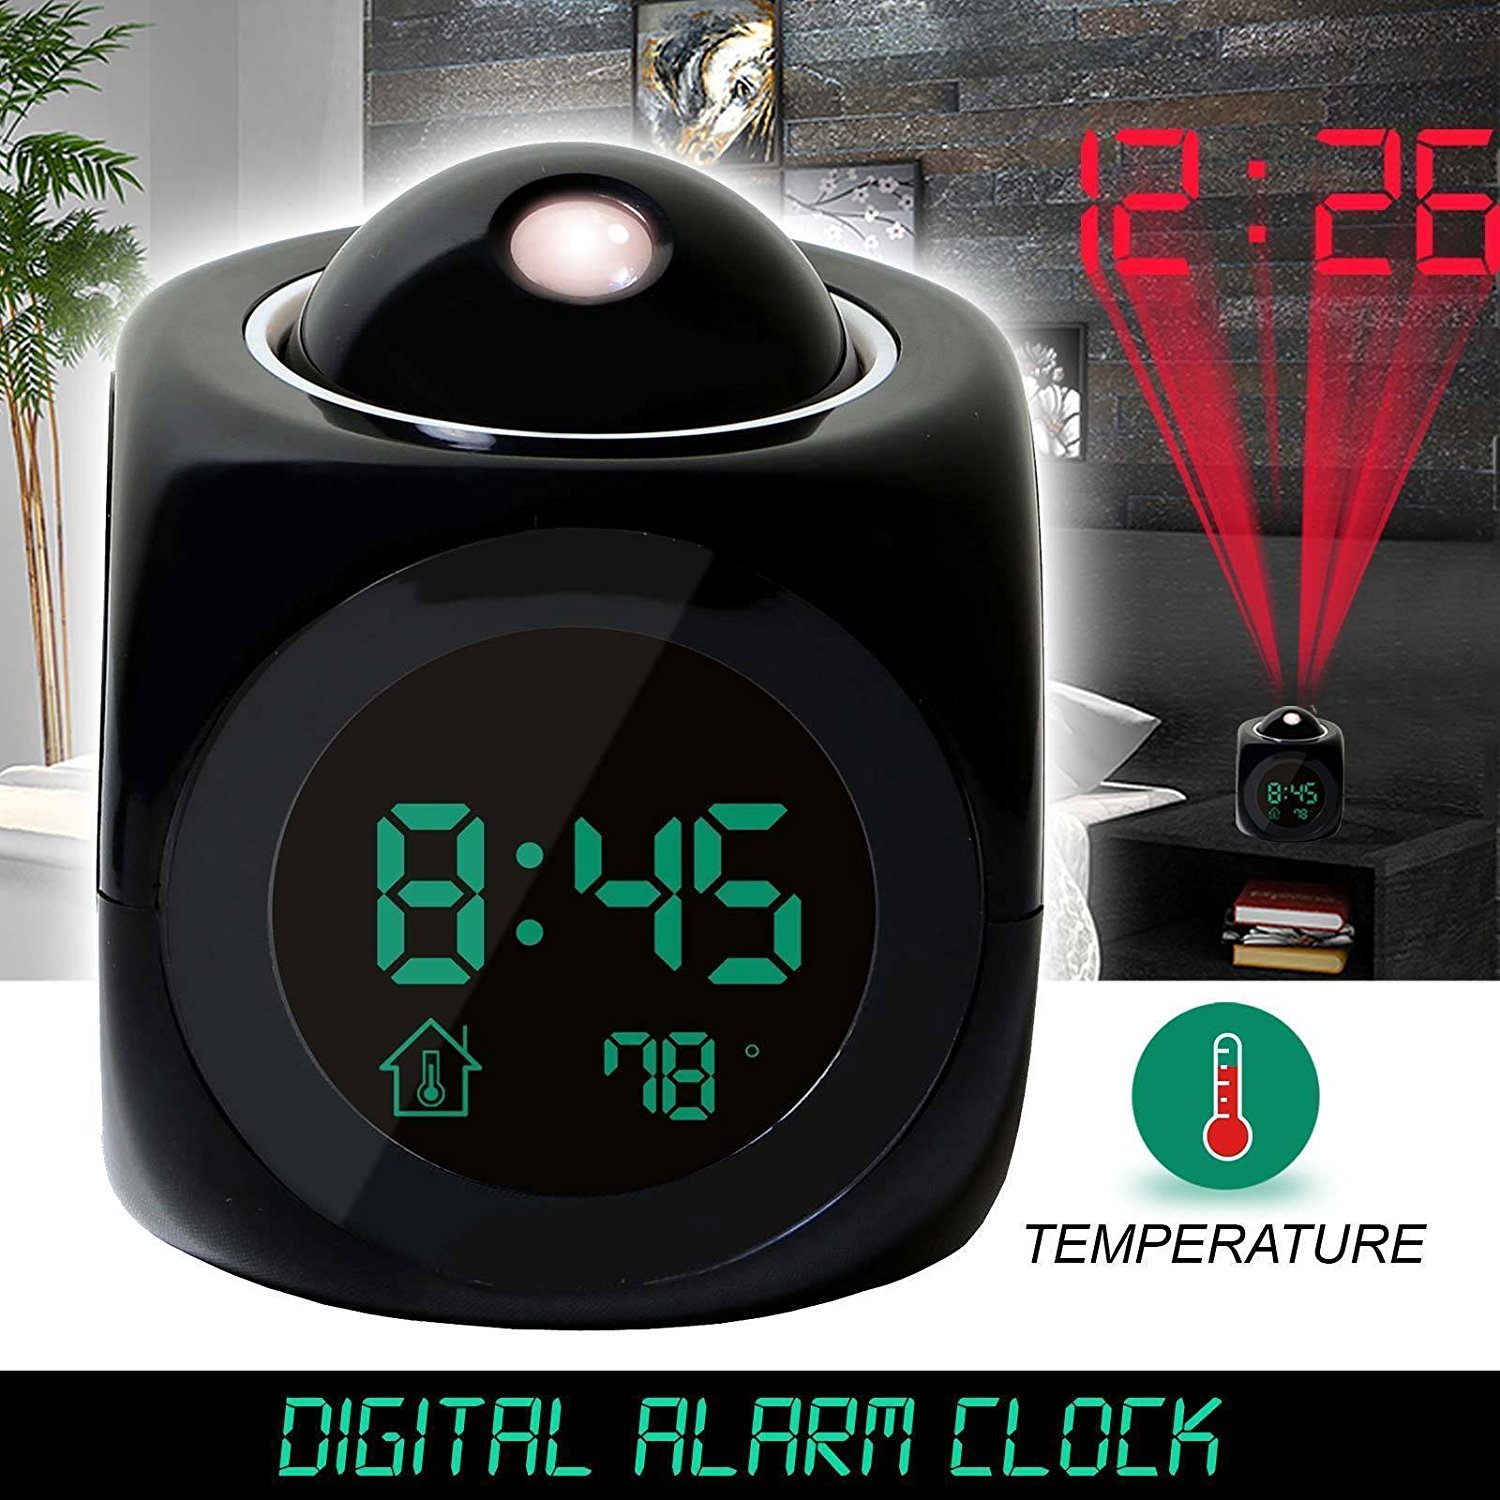 Digital Ceiling Clock